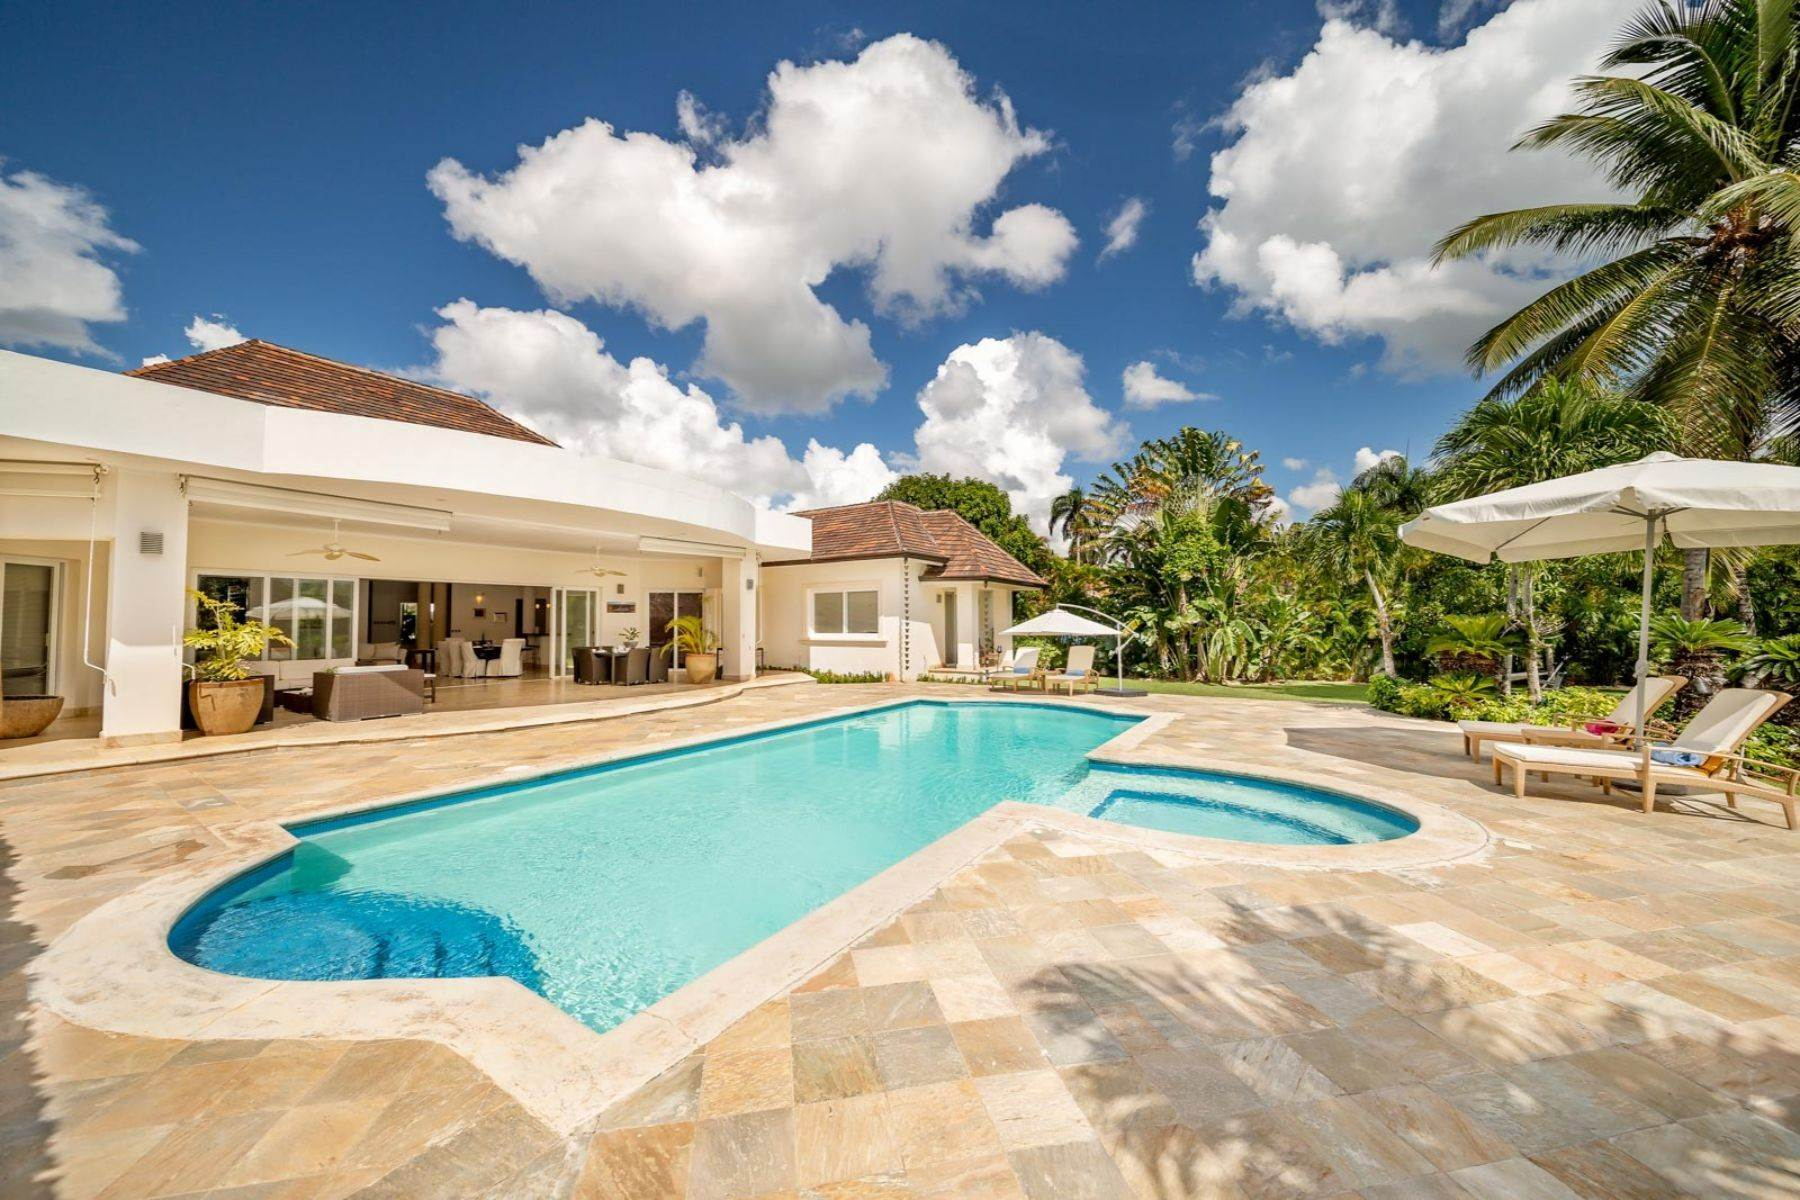 Single Family Homes for Sale at Los Mangos # 20 - Elegant and modern villa located in the heart of Casa de Campo Los Mangos # 20 Casa De Campo, La Romana 22000 Dominican Republic